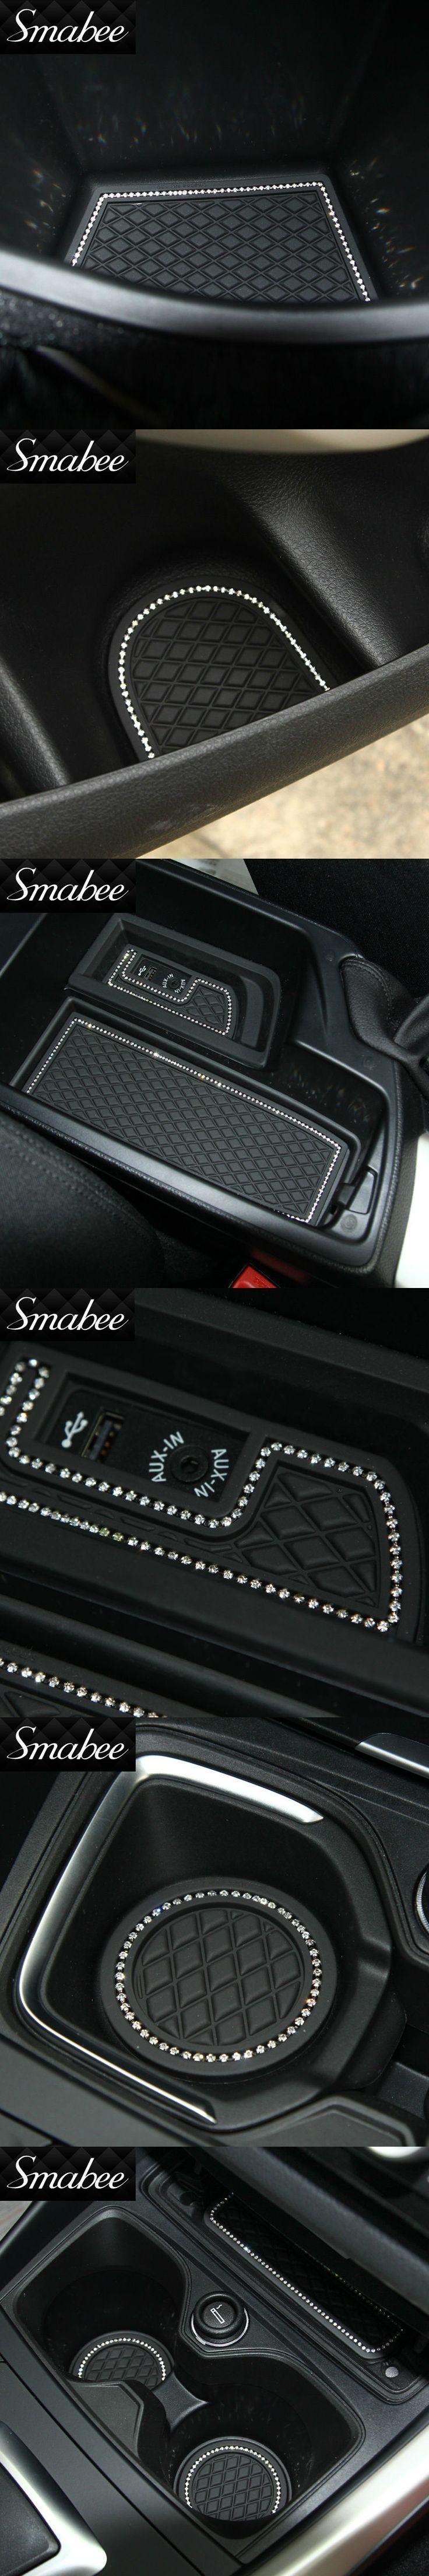 Smabee Door Groove Mat For BMW NEW 3 series F30 F35 320i 316i 328 LHD Gate slot pad Automotive interior Anti-Slip Mat